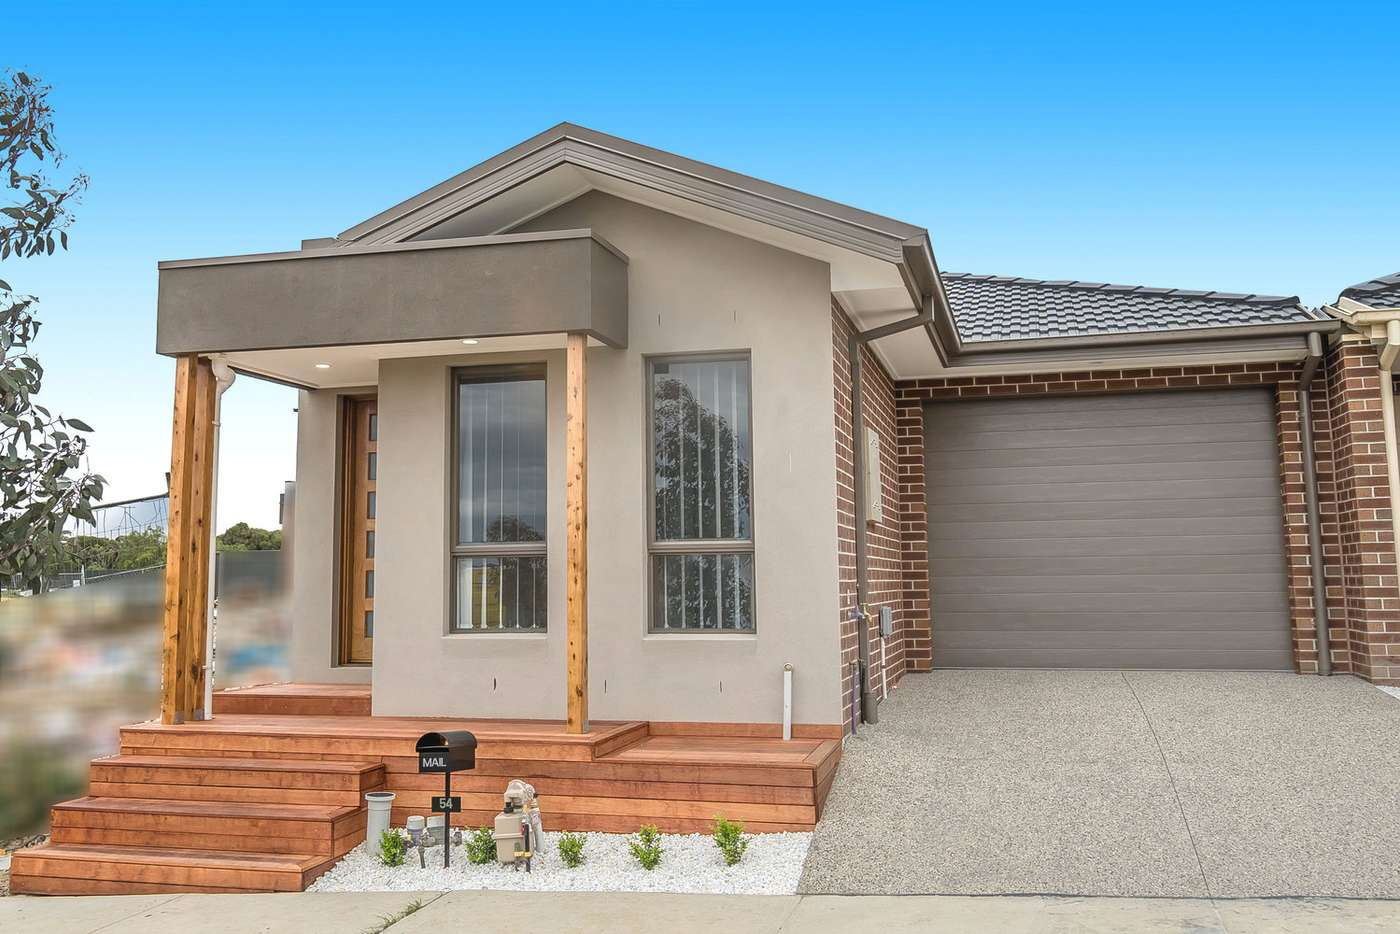 Main view of Homely house listing, 54 Fortitude Drive, Craigieburn VIC 3064